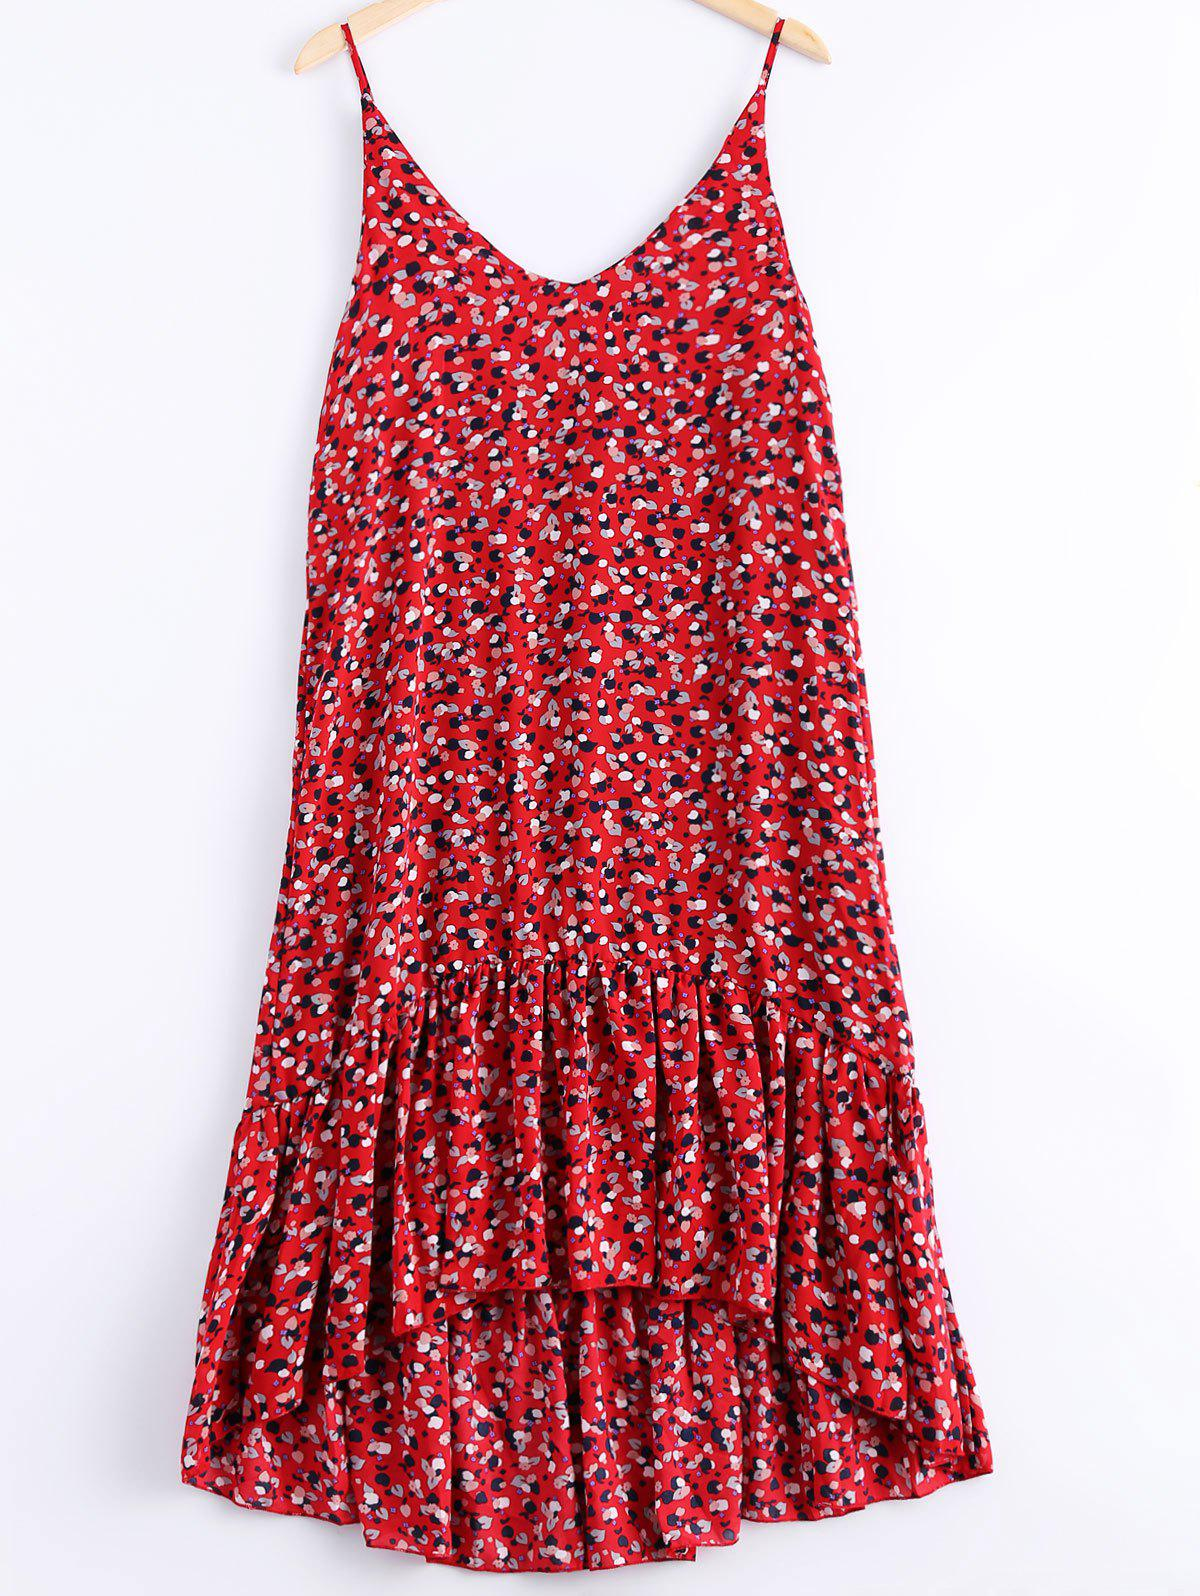 Elegant Women's V-Neck Flounce Printing Spaghetti Strap Dress - RED ONE SIZE(FIT SIZE XS TO M)